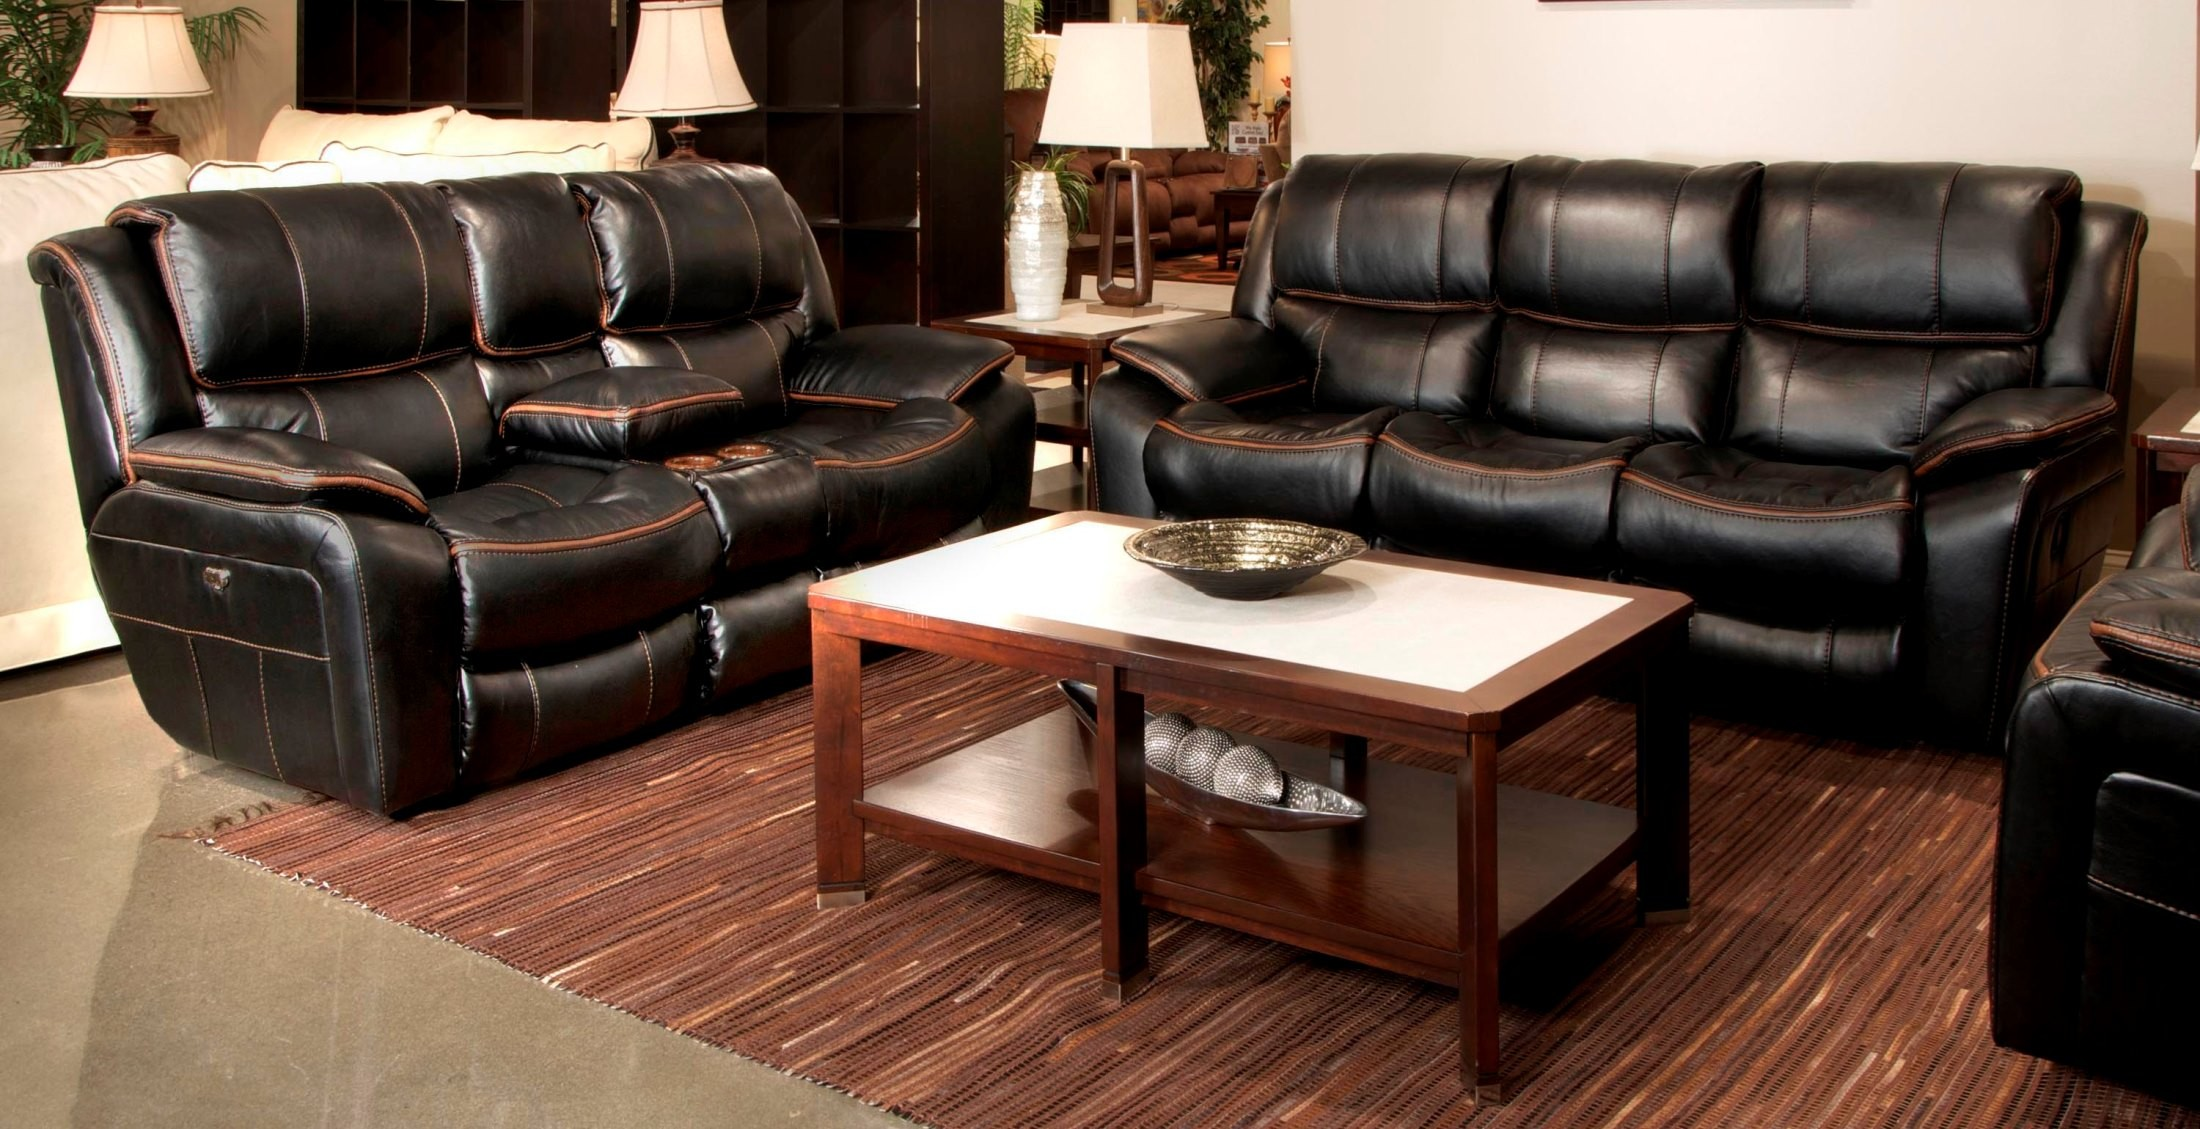 Beckett black power reclining living room set 64511115208 for Cheap reclining living room sets